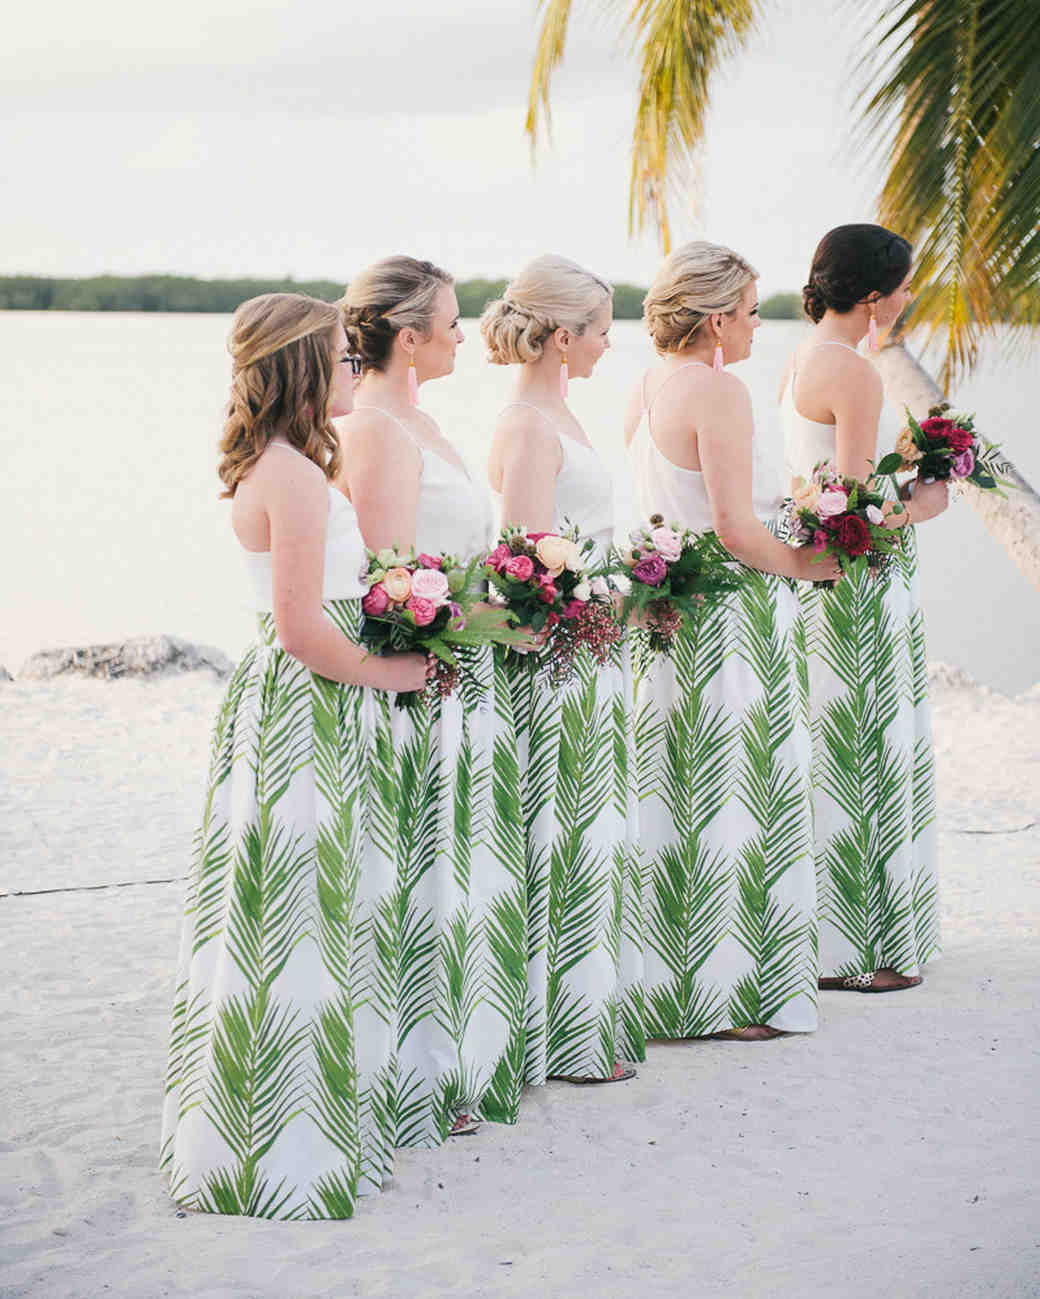 Ideas For A Fun Wedding: Beautiful Ideas From Beach Weddings